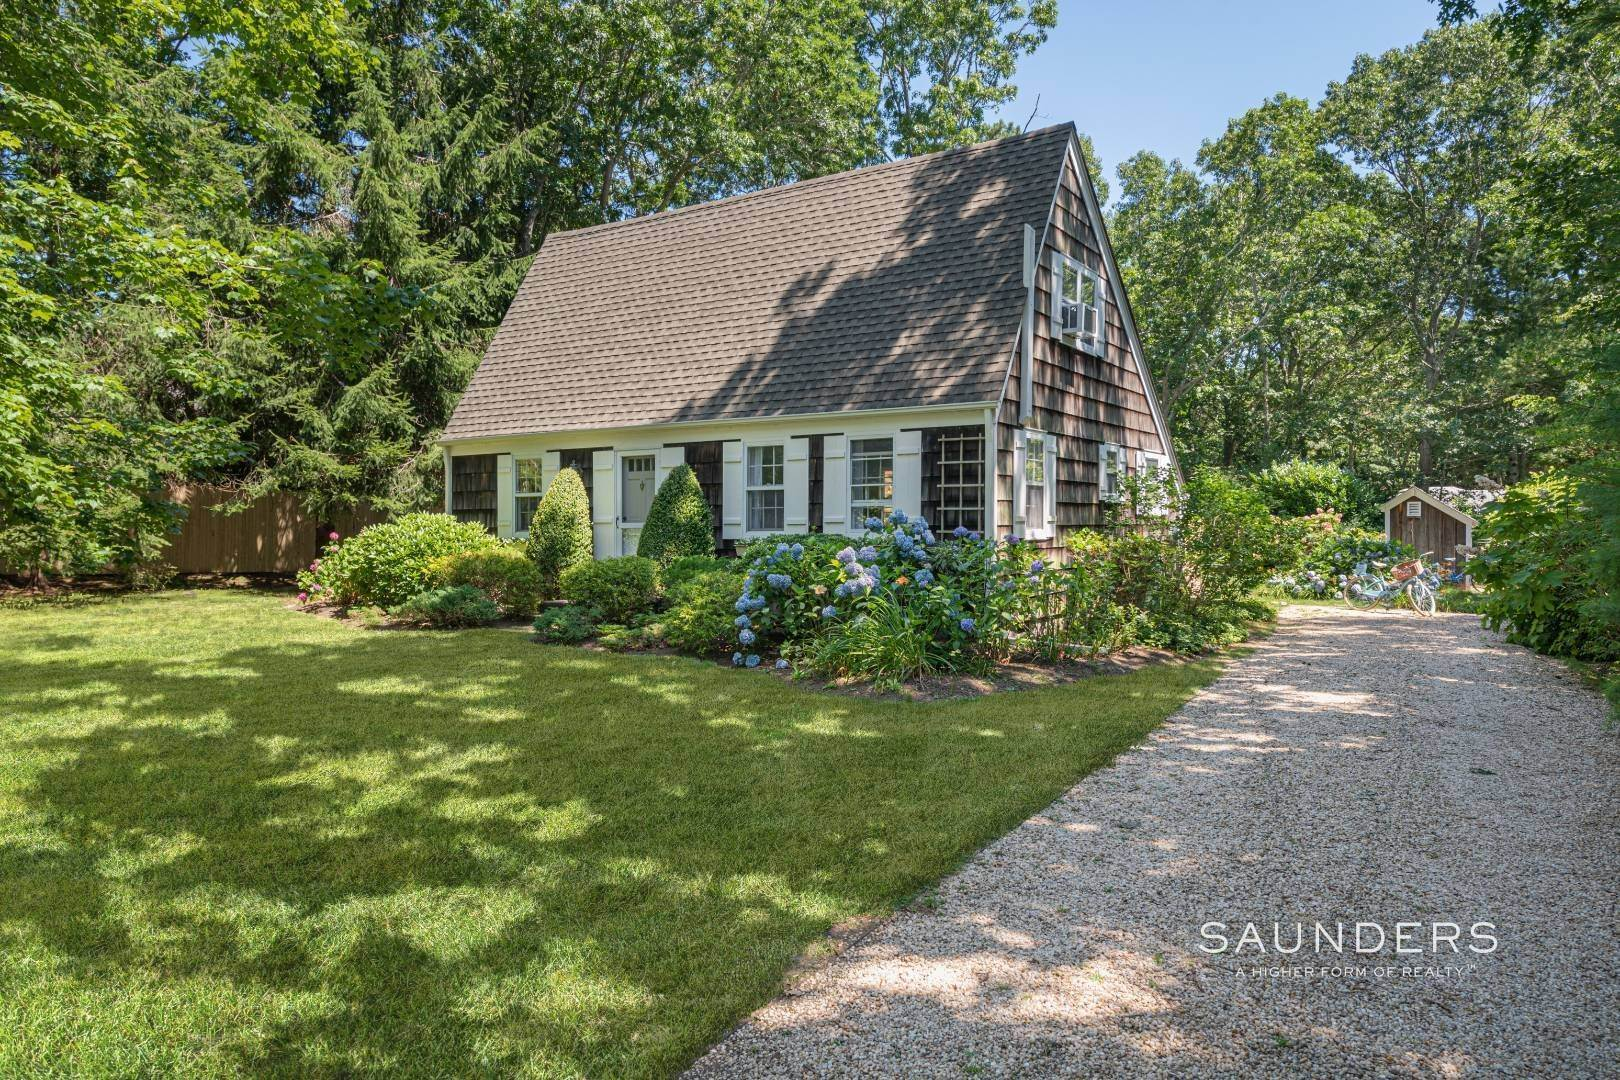 2. Single Family Homes for Sale at Bucolic South Of The Highway In Wainscott 6 Windsor Lane, Wainscott, East Hampton Town, NY 11975